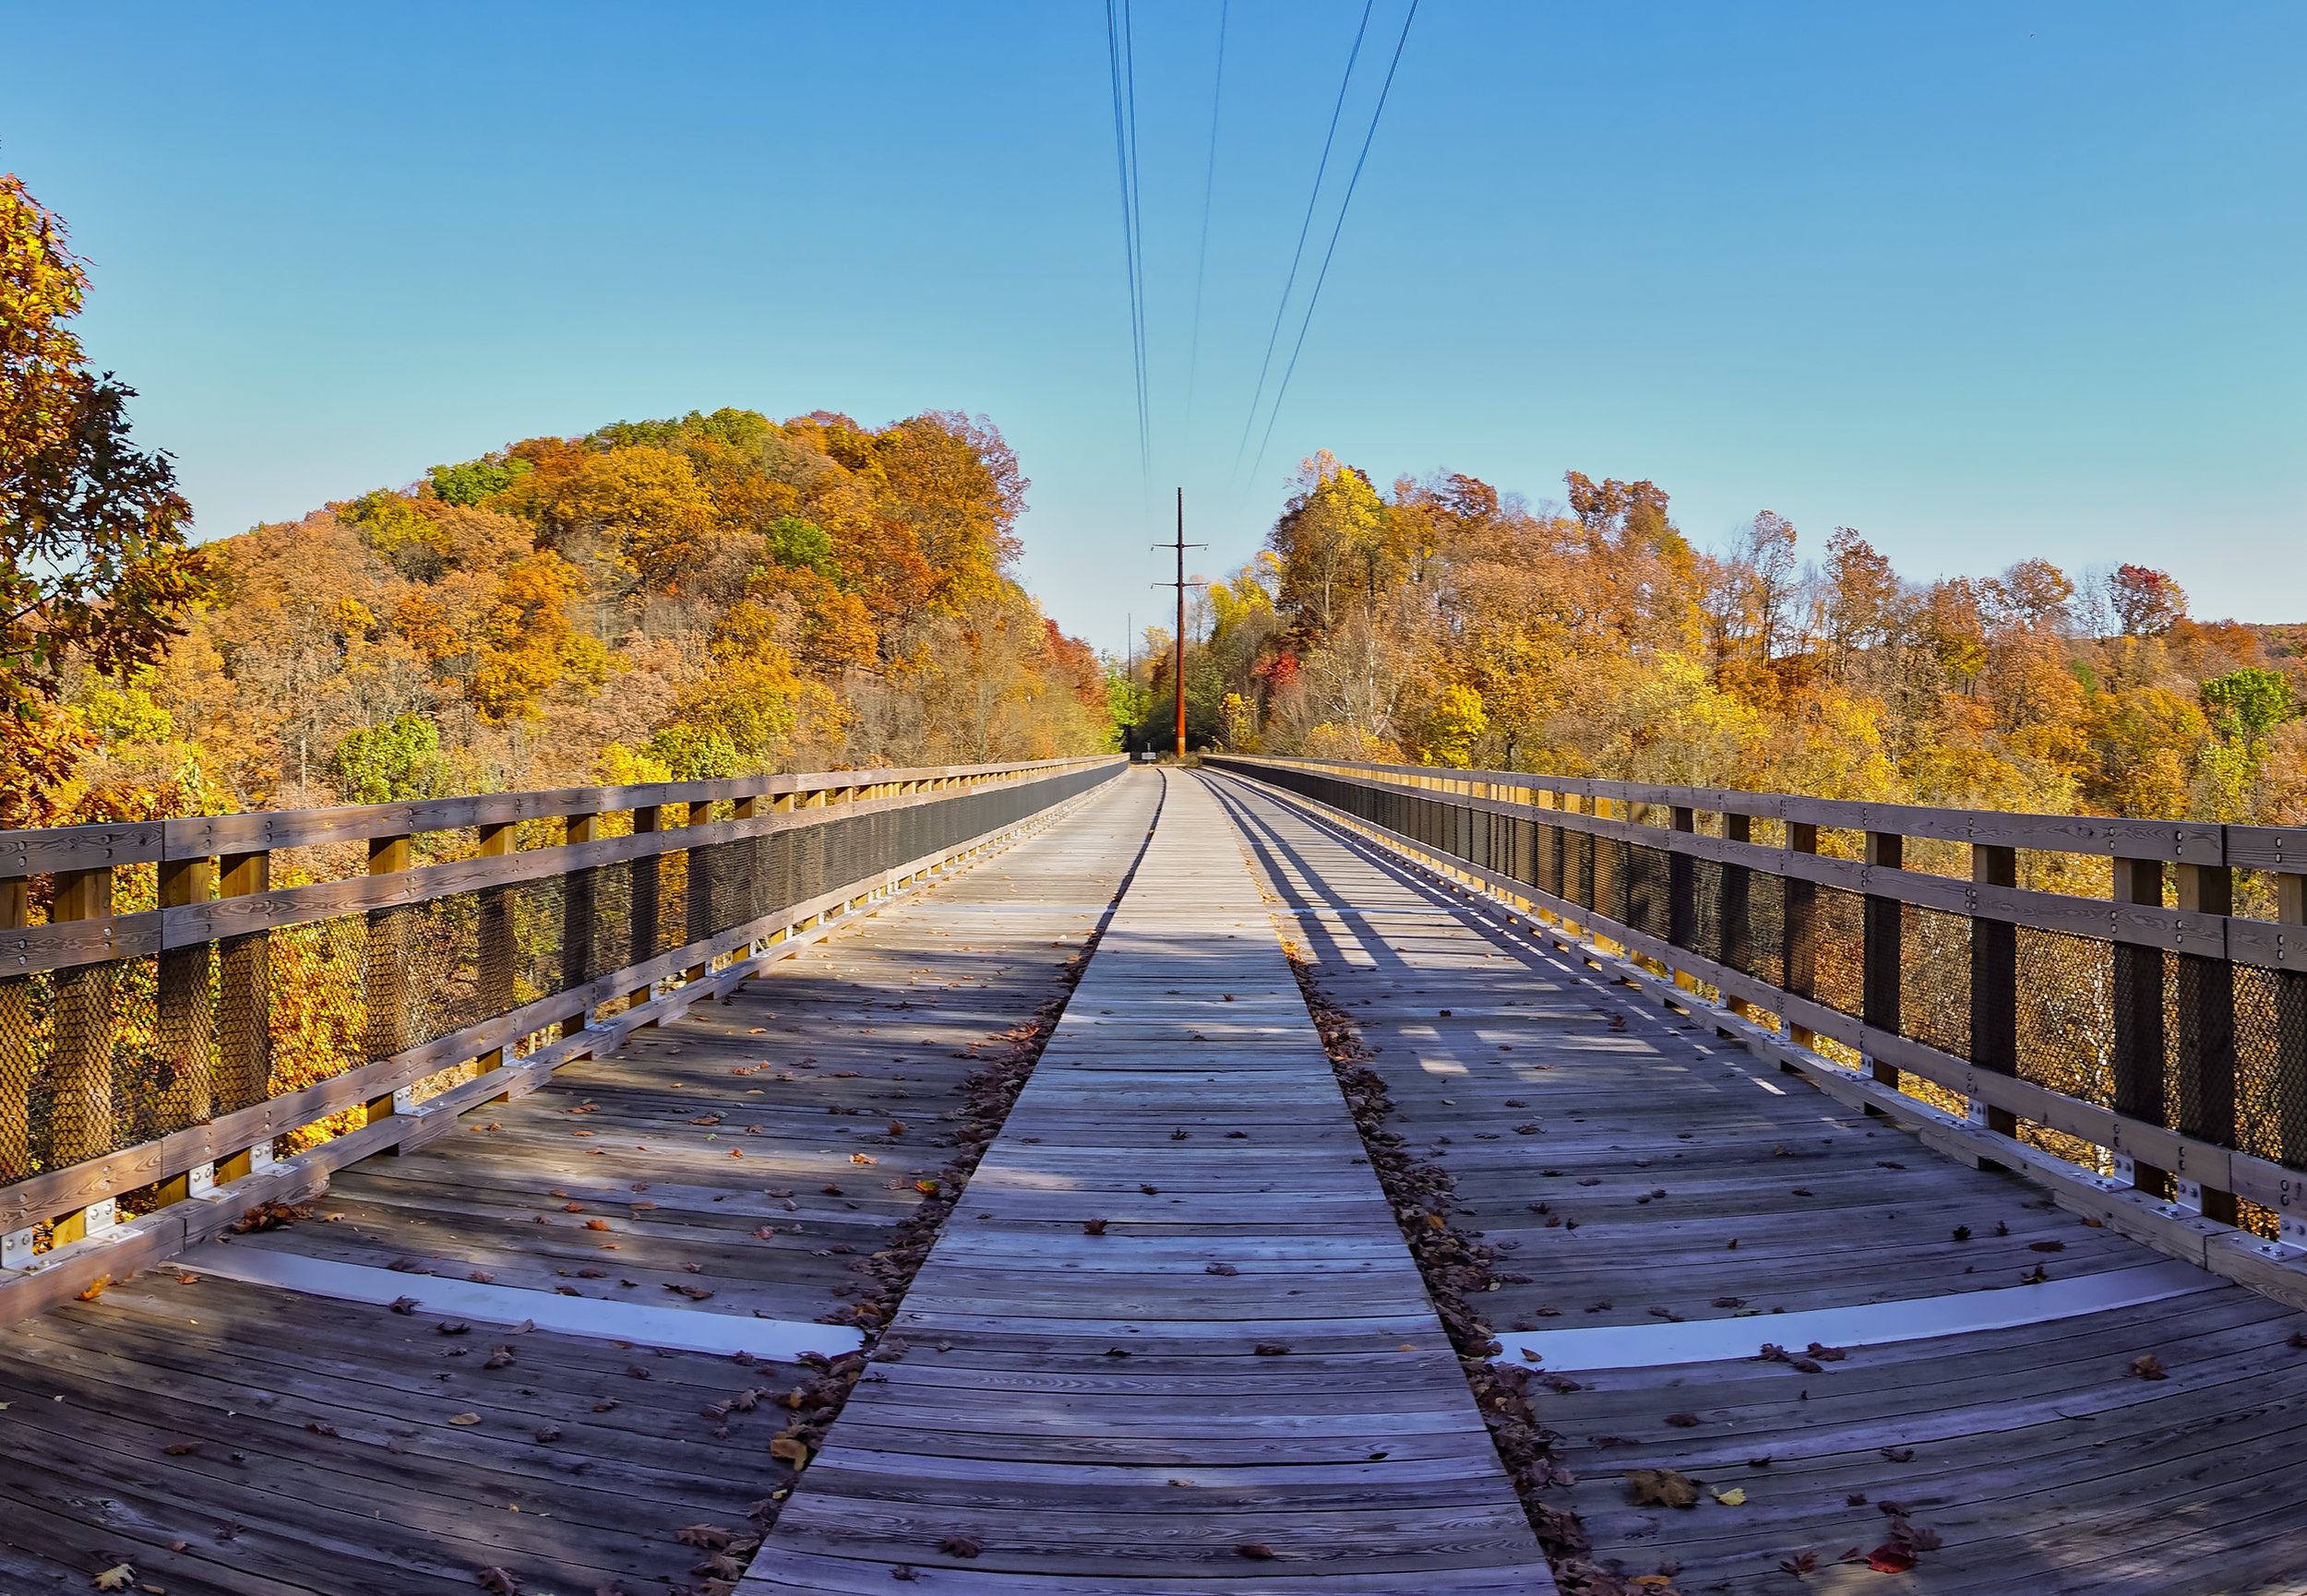 Panoramic View of the Martic Forge Viaduct.